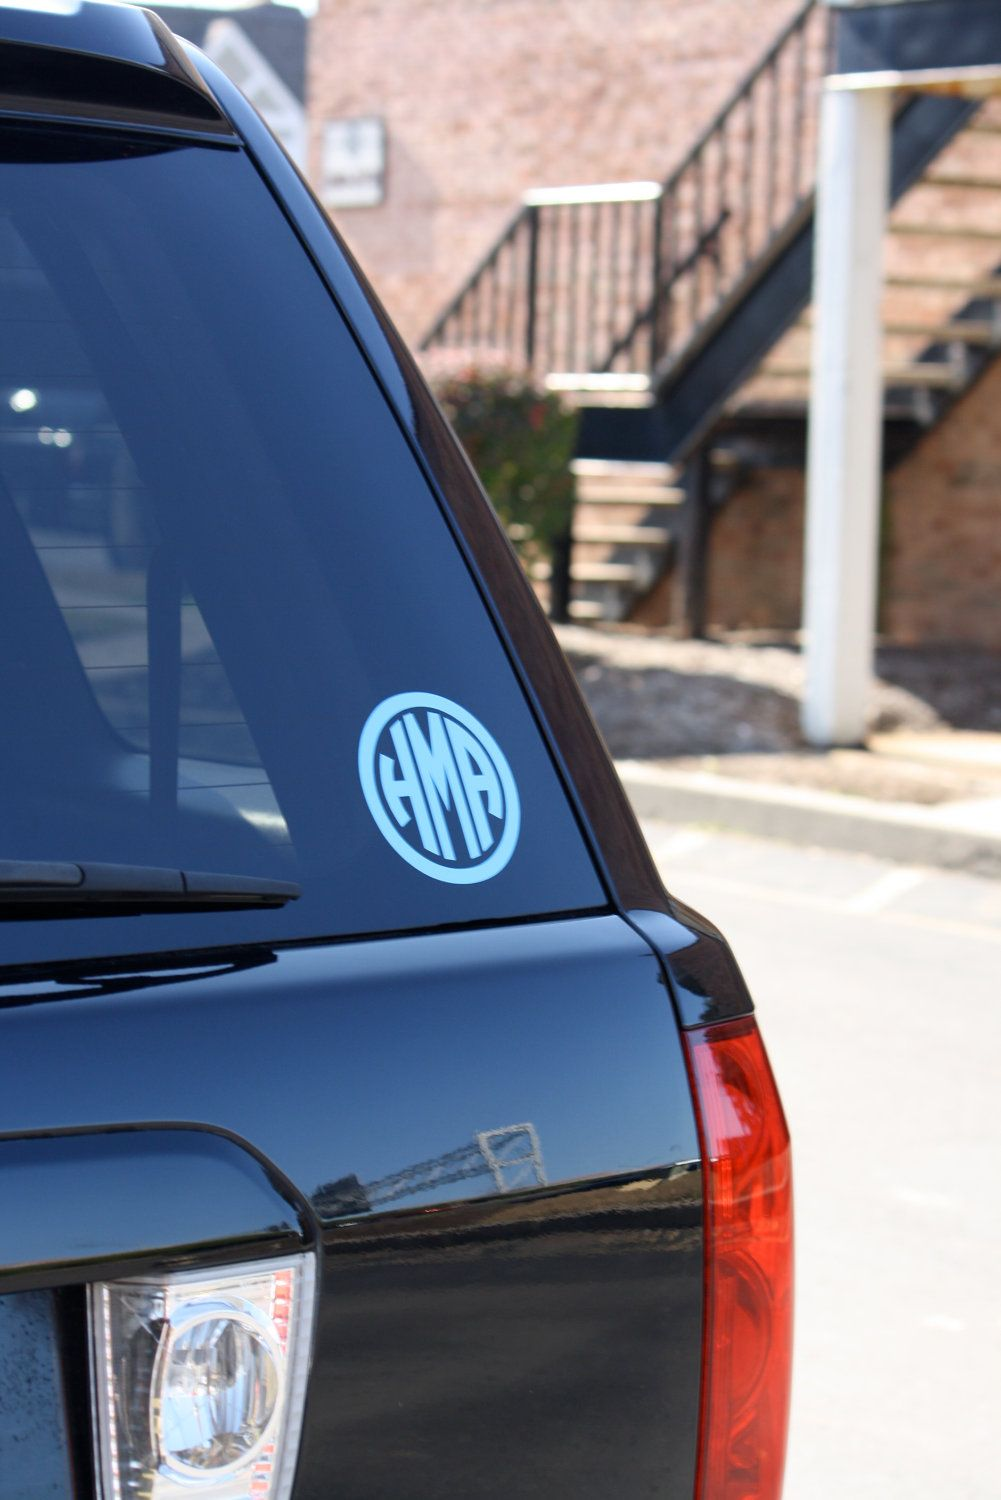 Custom Vinyl Circle Monogram Sticker Monogramaholic - Monogrammed custom vinyl decals for car